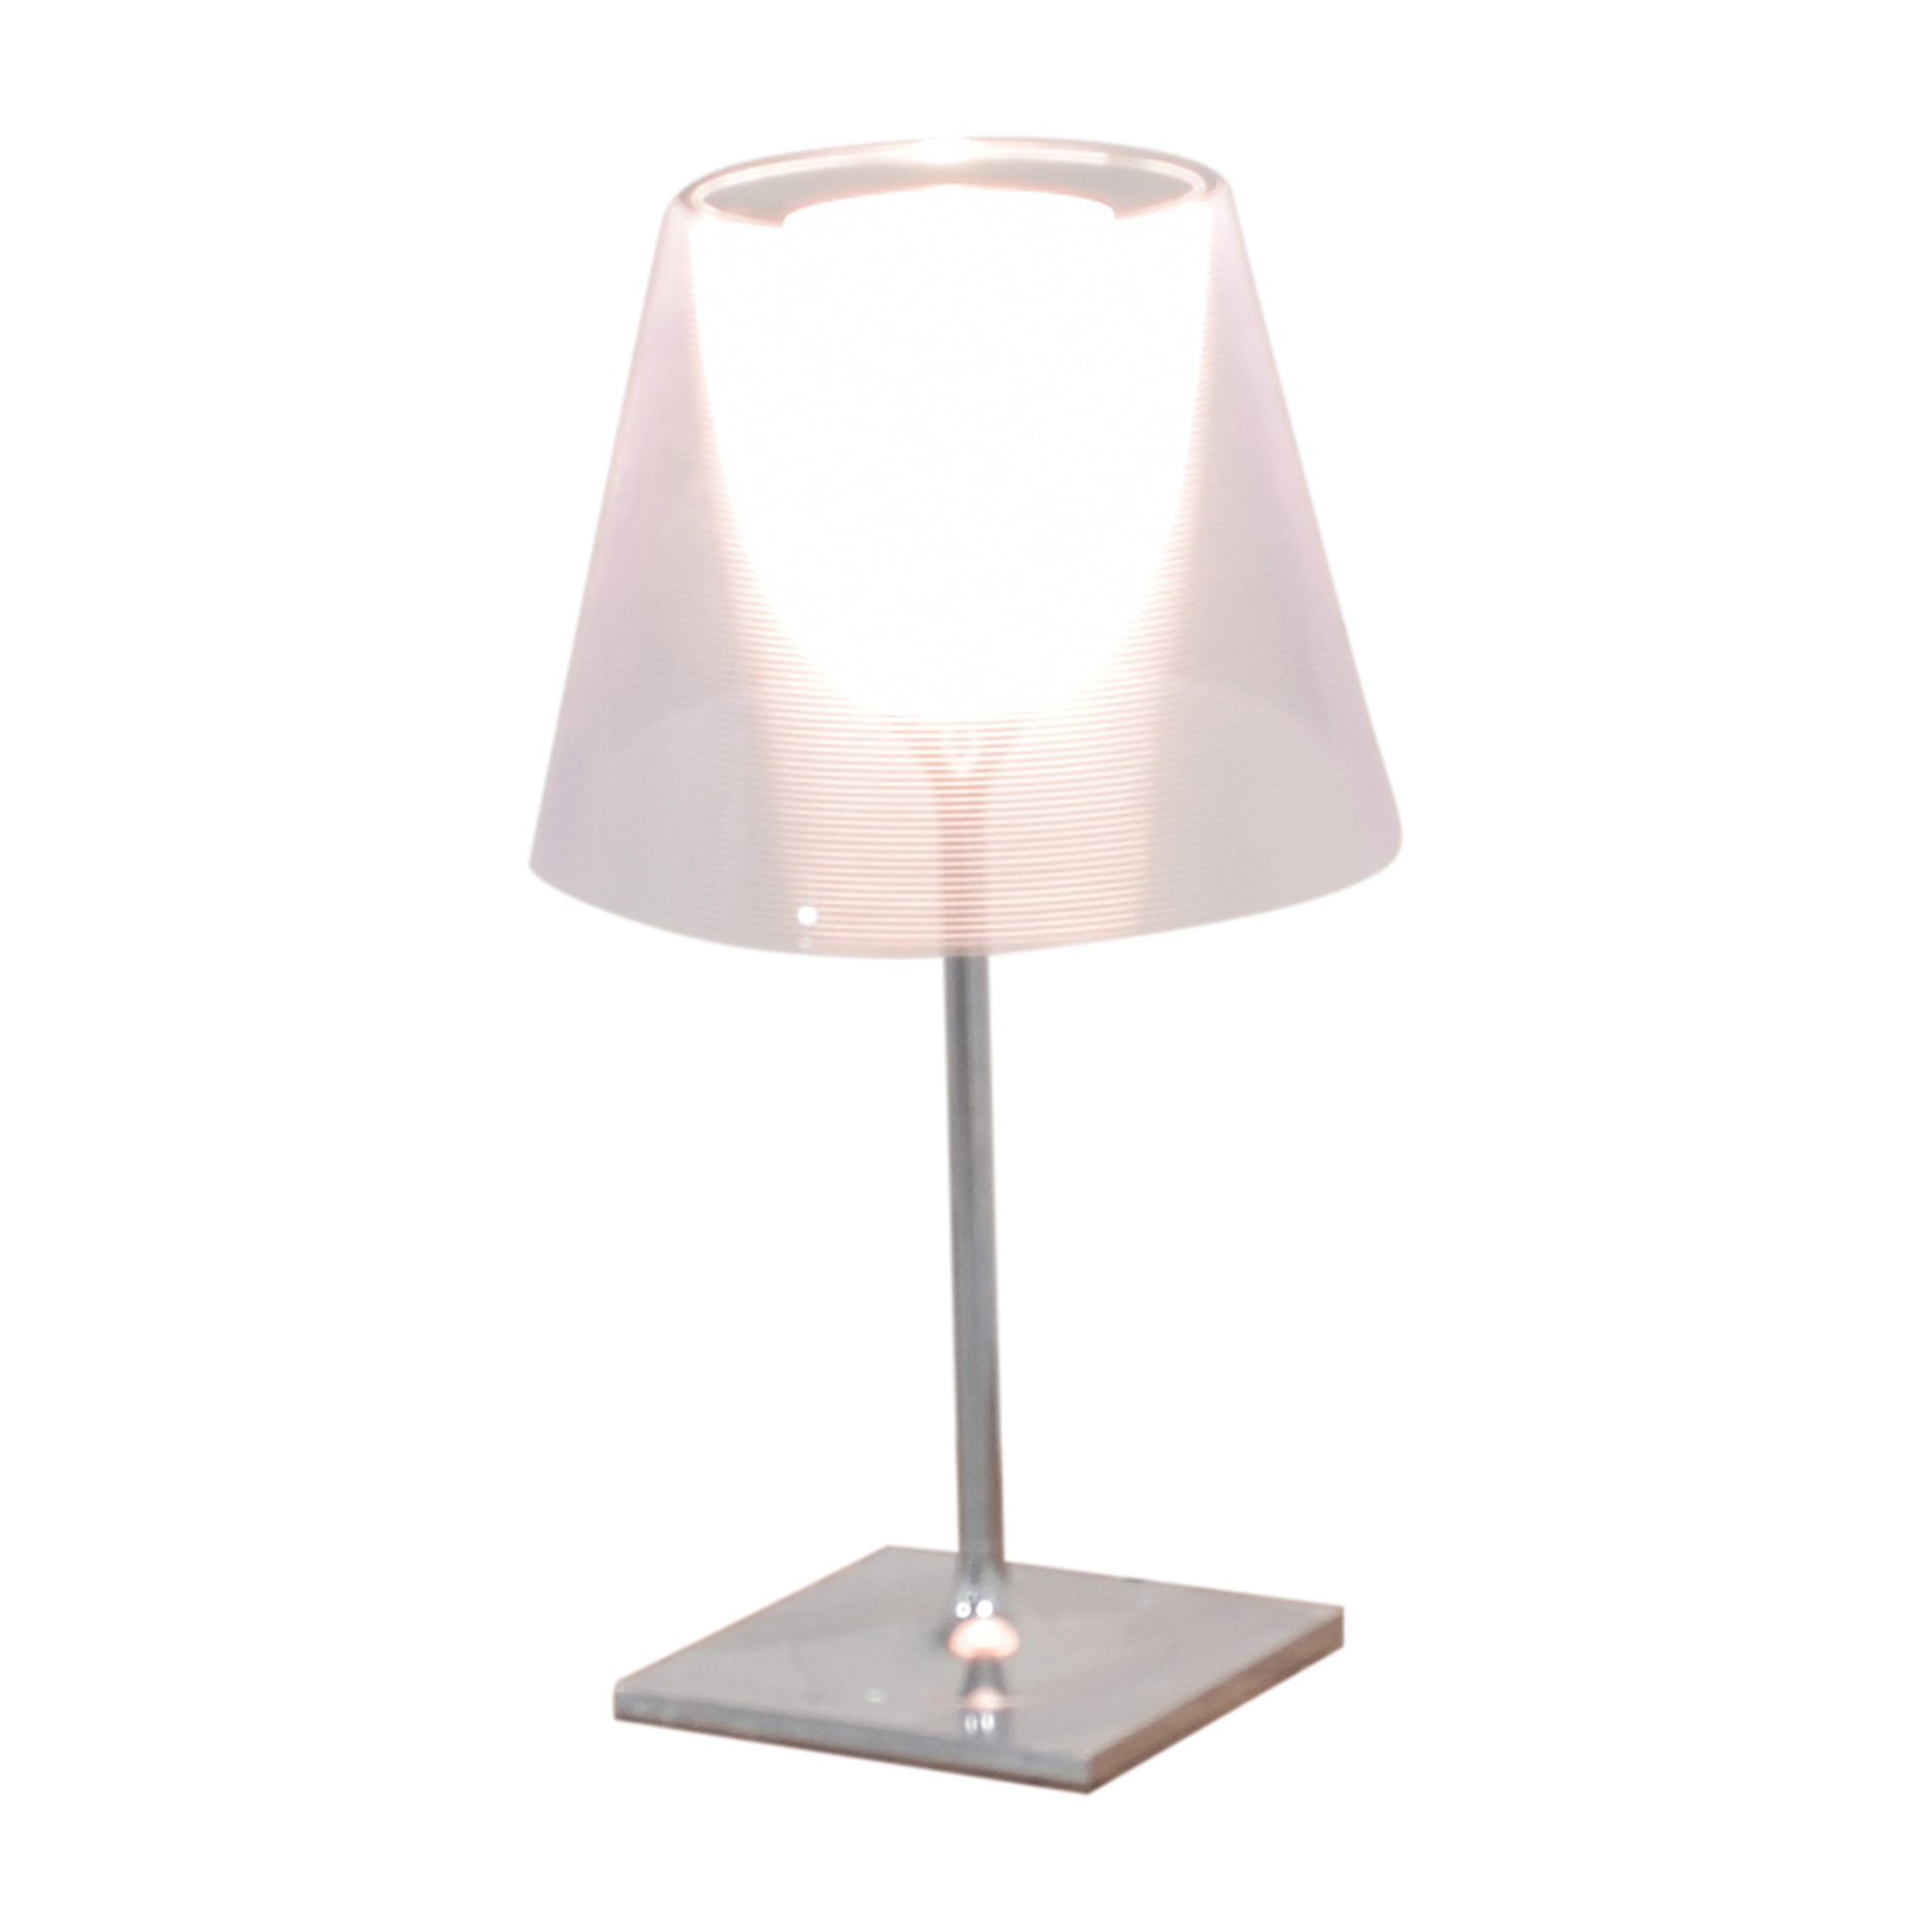 FLOS FLOS  Ktribe T1 Table Lamp price